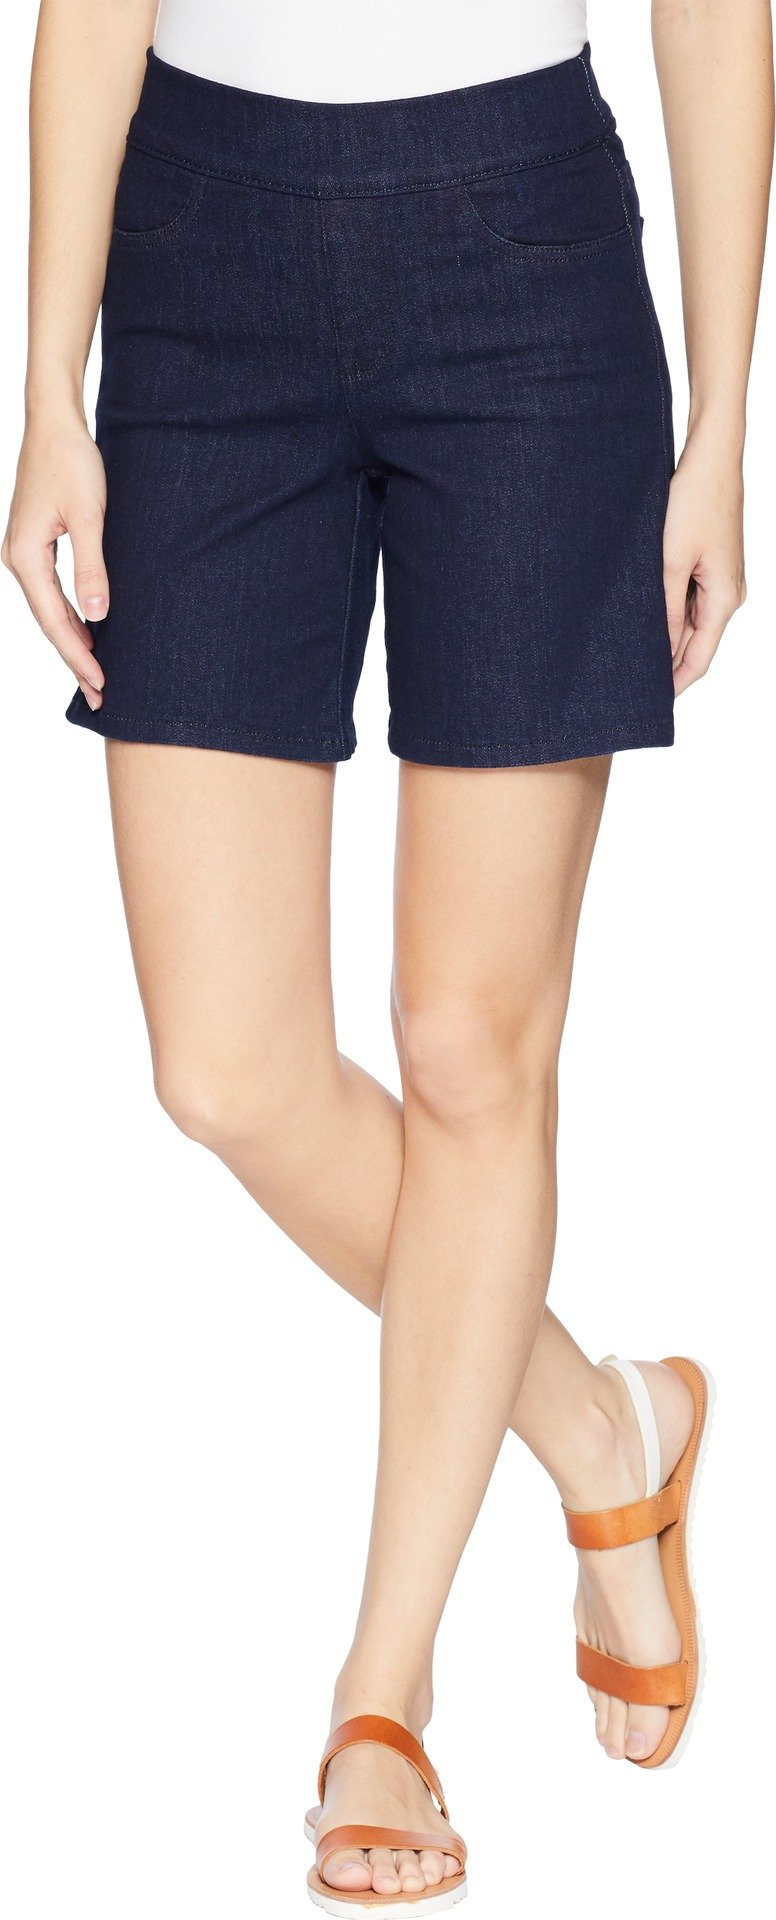 NYDJ Women's Pull on Short with Side Slit in Premium Denim, Rinse, 16